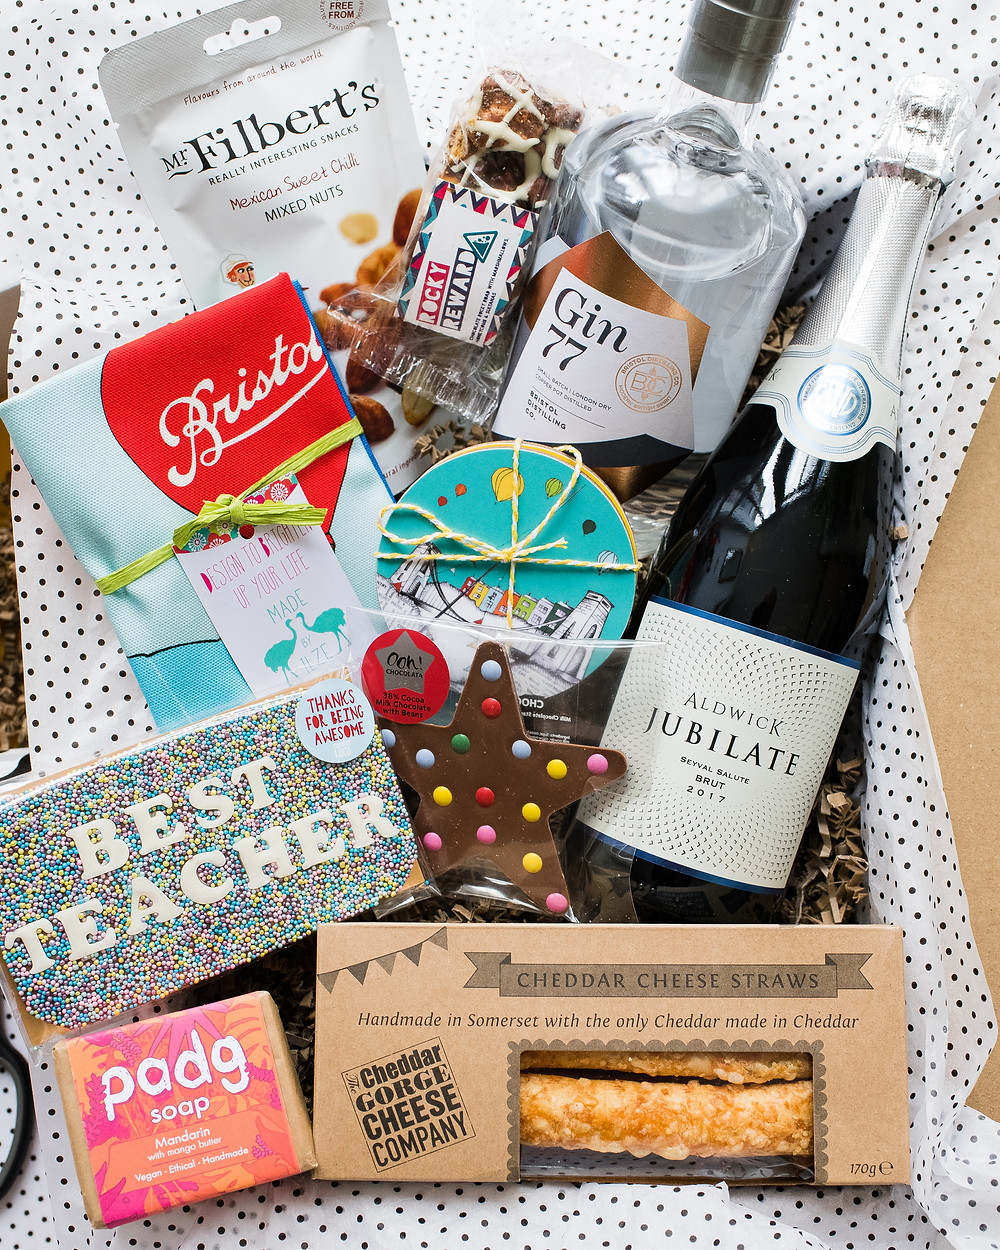 Bristol Hamper - Teacher's Gift Box - Gin, Alcohol, Chocolate, Savoury Snacks and Gifts to Keep